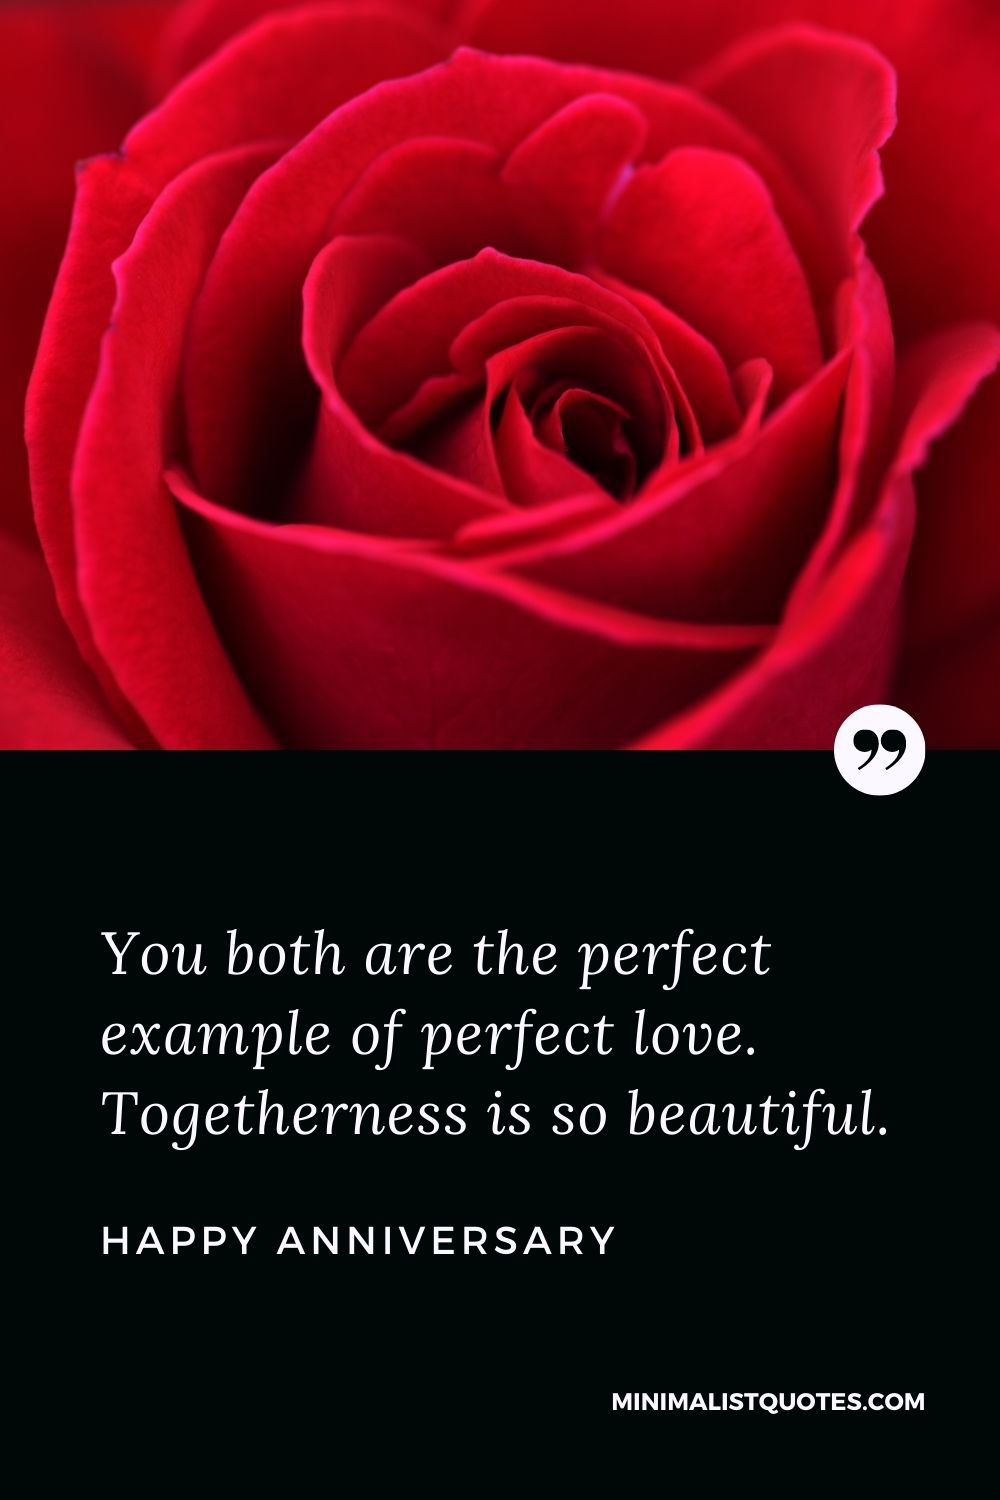 Happy Anniversary Wishes - You both are the perfect example of perfect love. Togetherness is so beautiful.